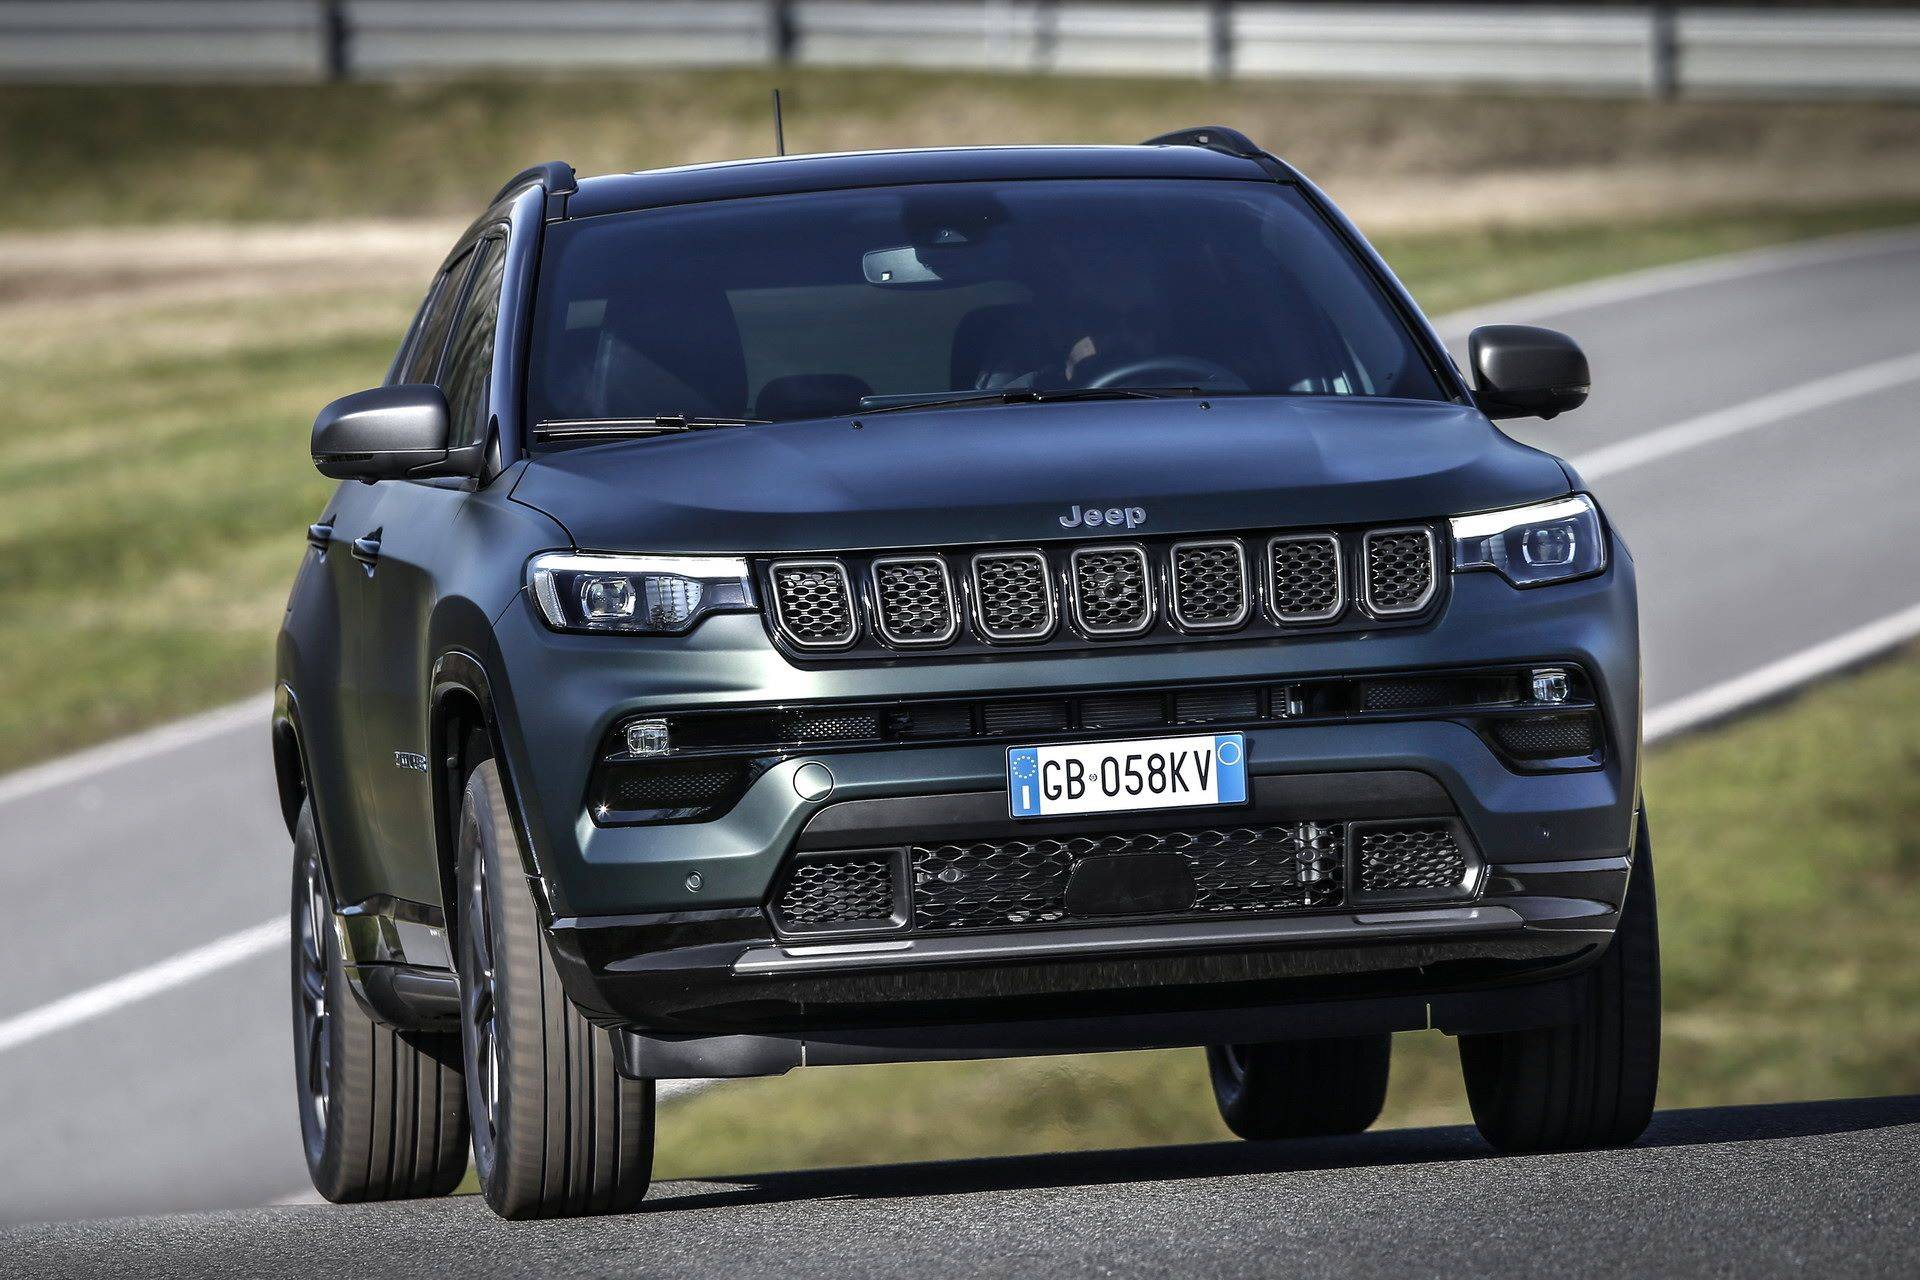 Jeep-Compass-facelift-2021-12